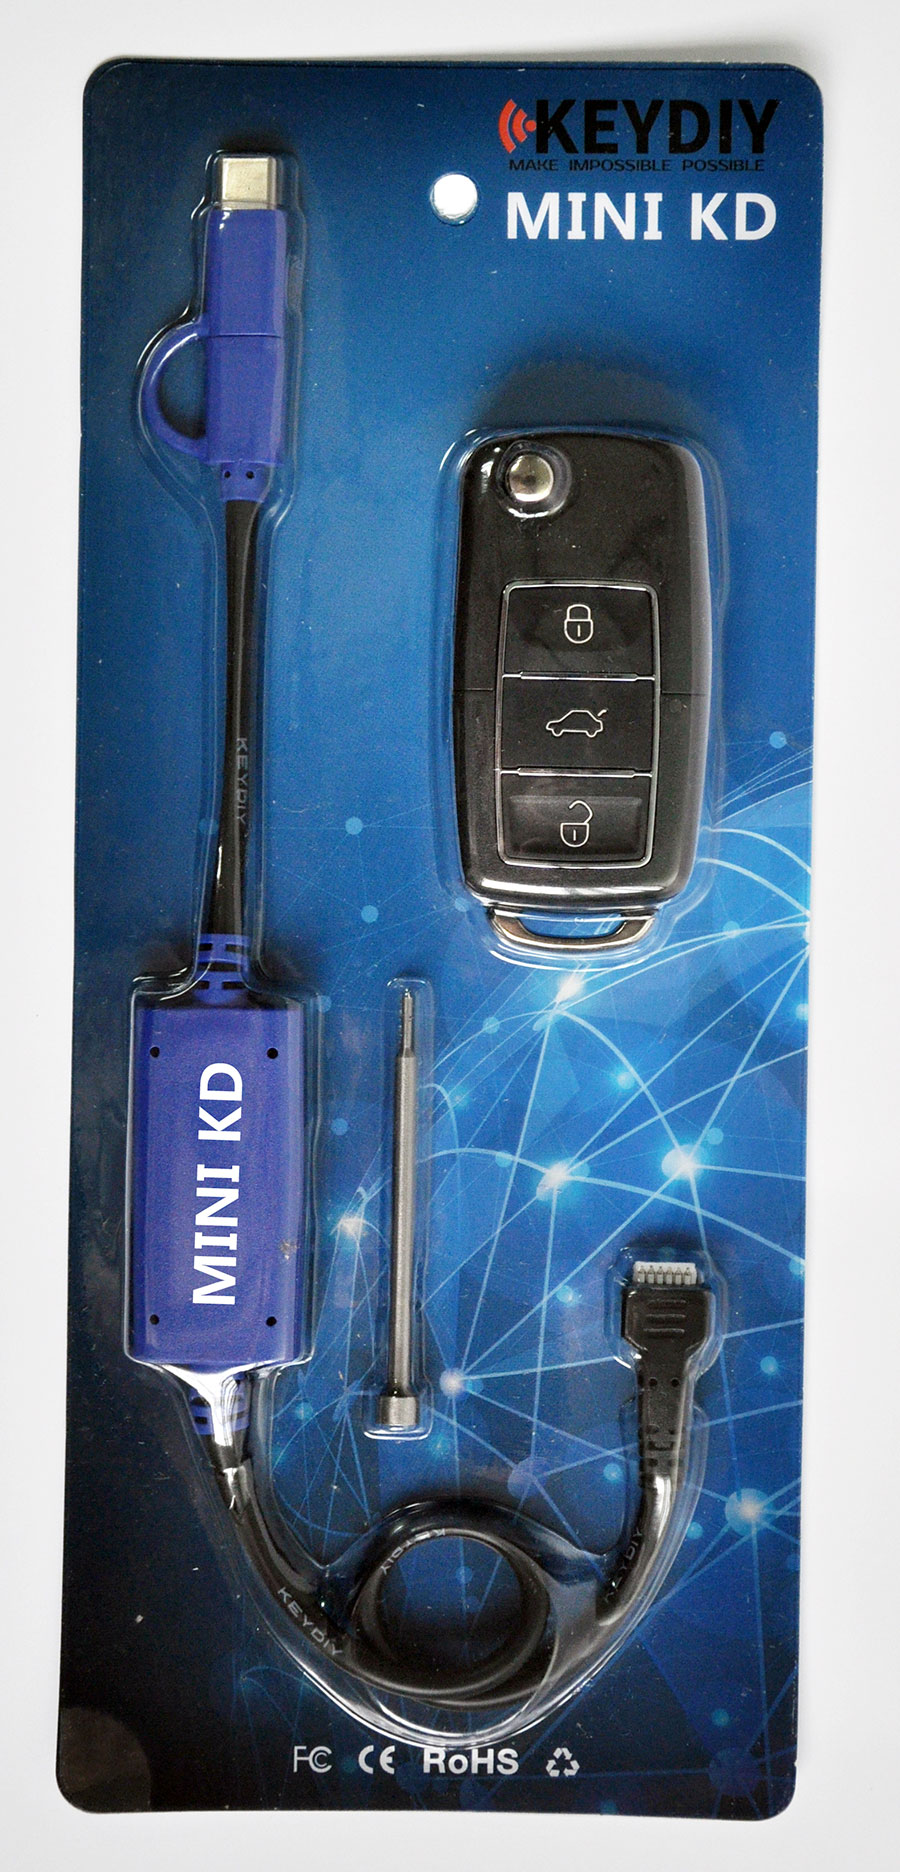 Keydiy Mini KD Mobile Key Remote Maker Package